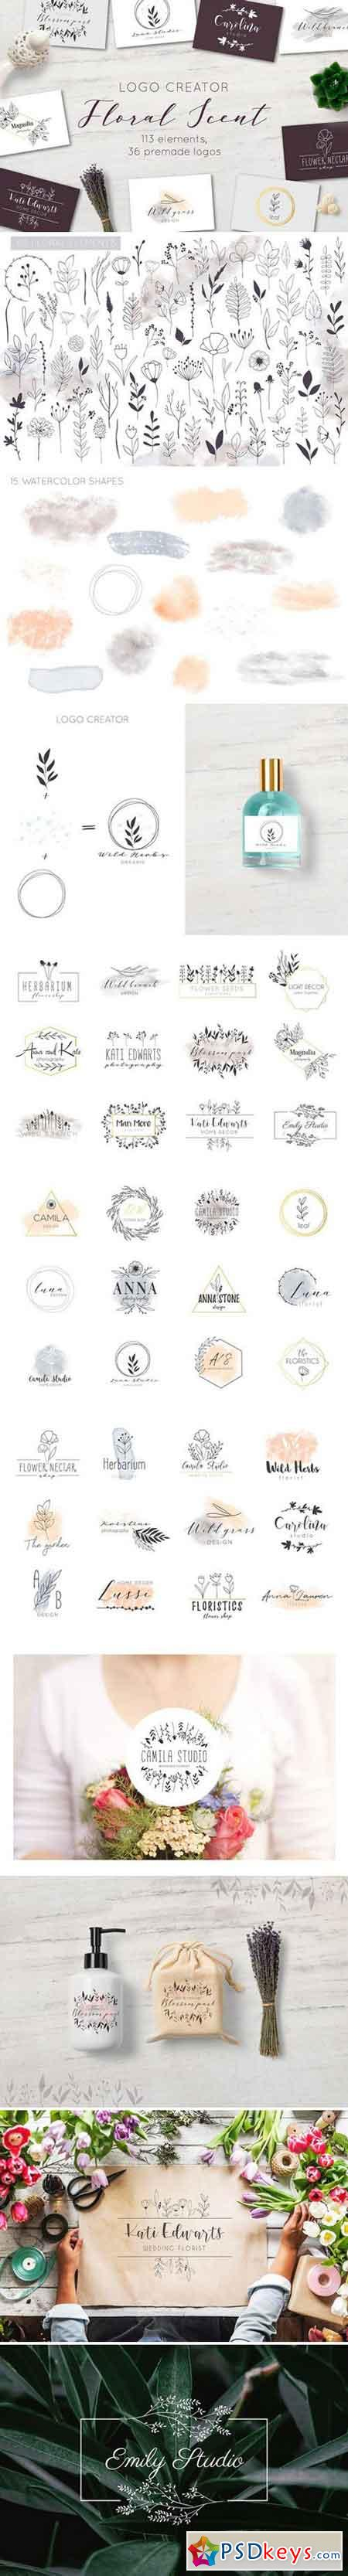 Floral Scent LOGO CREATOR 2147698